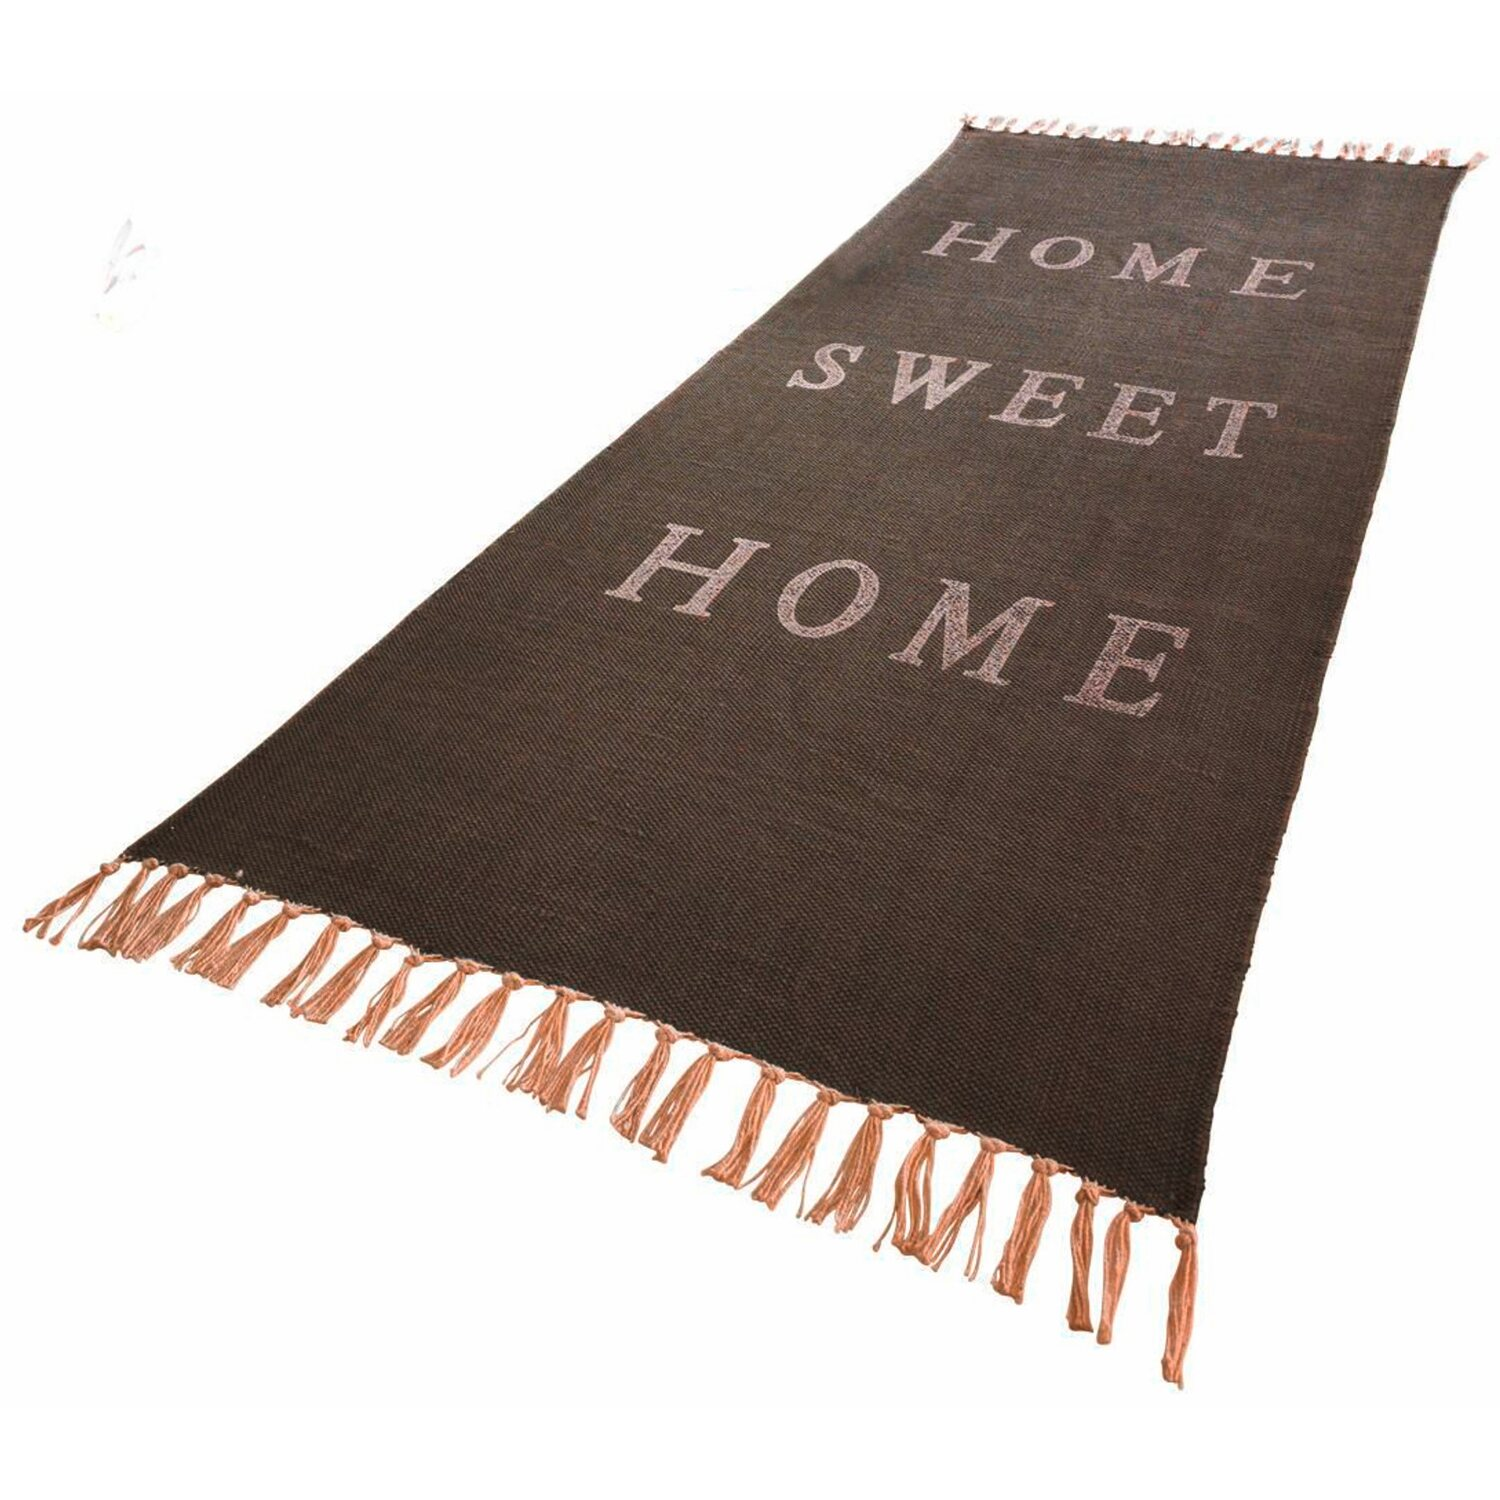 best of home Best of home Teppich Home sweet Home 70 cm x 200 cm